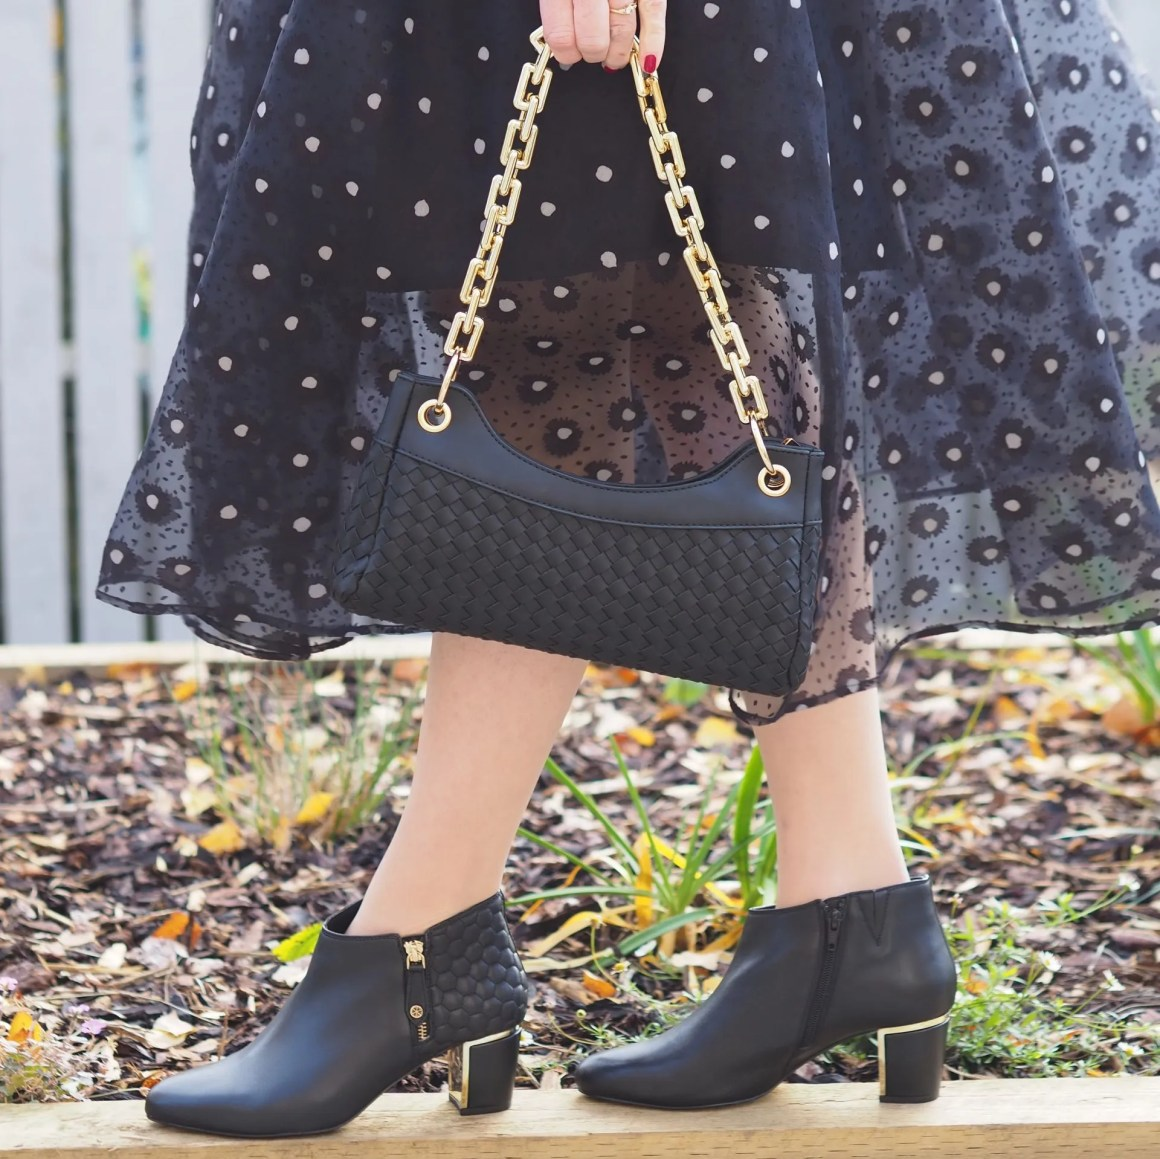 black quilted ankle boots with gold hardwear